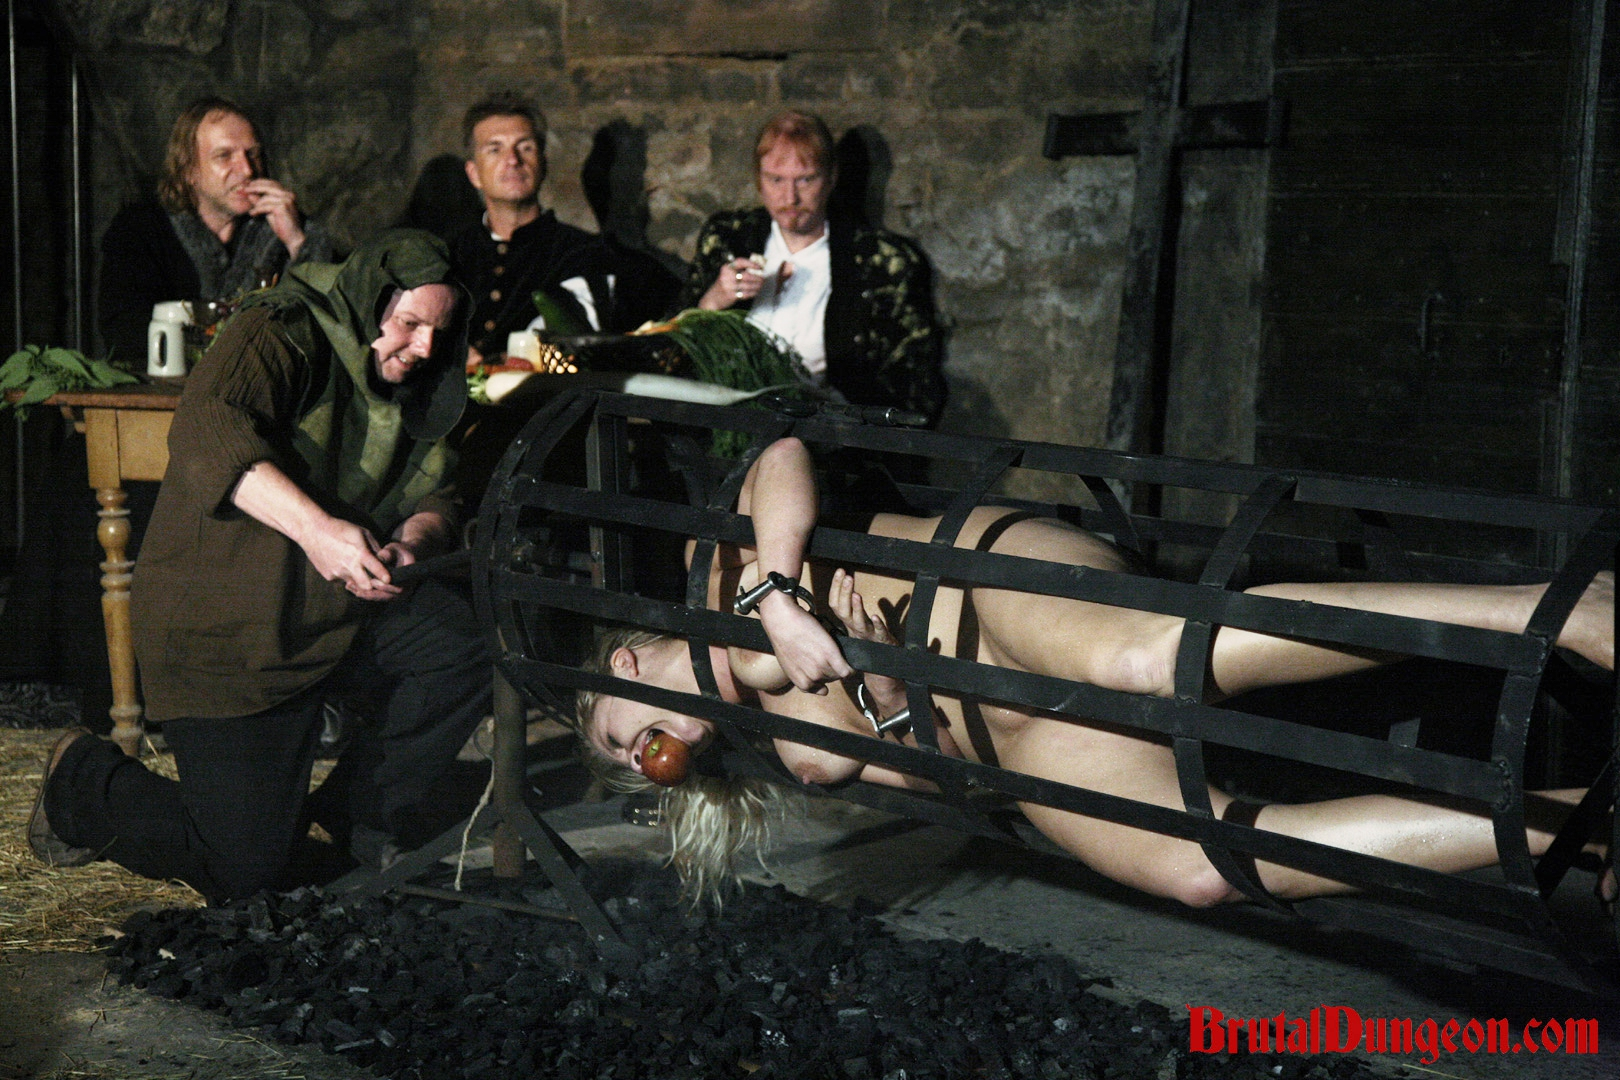 Blonde magda bondage gang bang. Magda, a hot blonde wench the dungeon keepers wanted to play with, was wrongfully arrested and punished. She must endure imprisonment, BDSM fun, bondage, gang bang, spanking, slapping, fingering, extreme food play, triple penetration with tasty vegetables and a ride in a human spit roast.